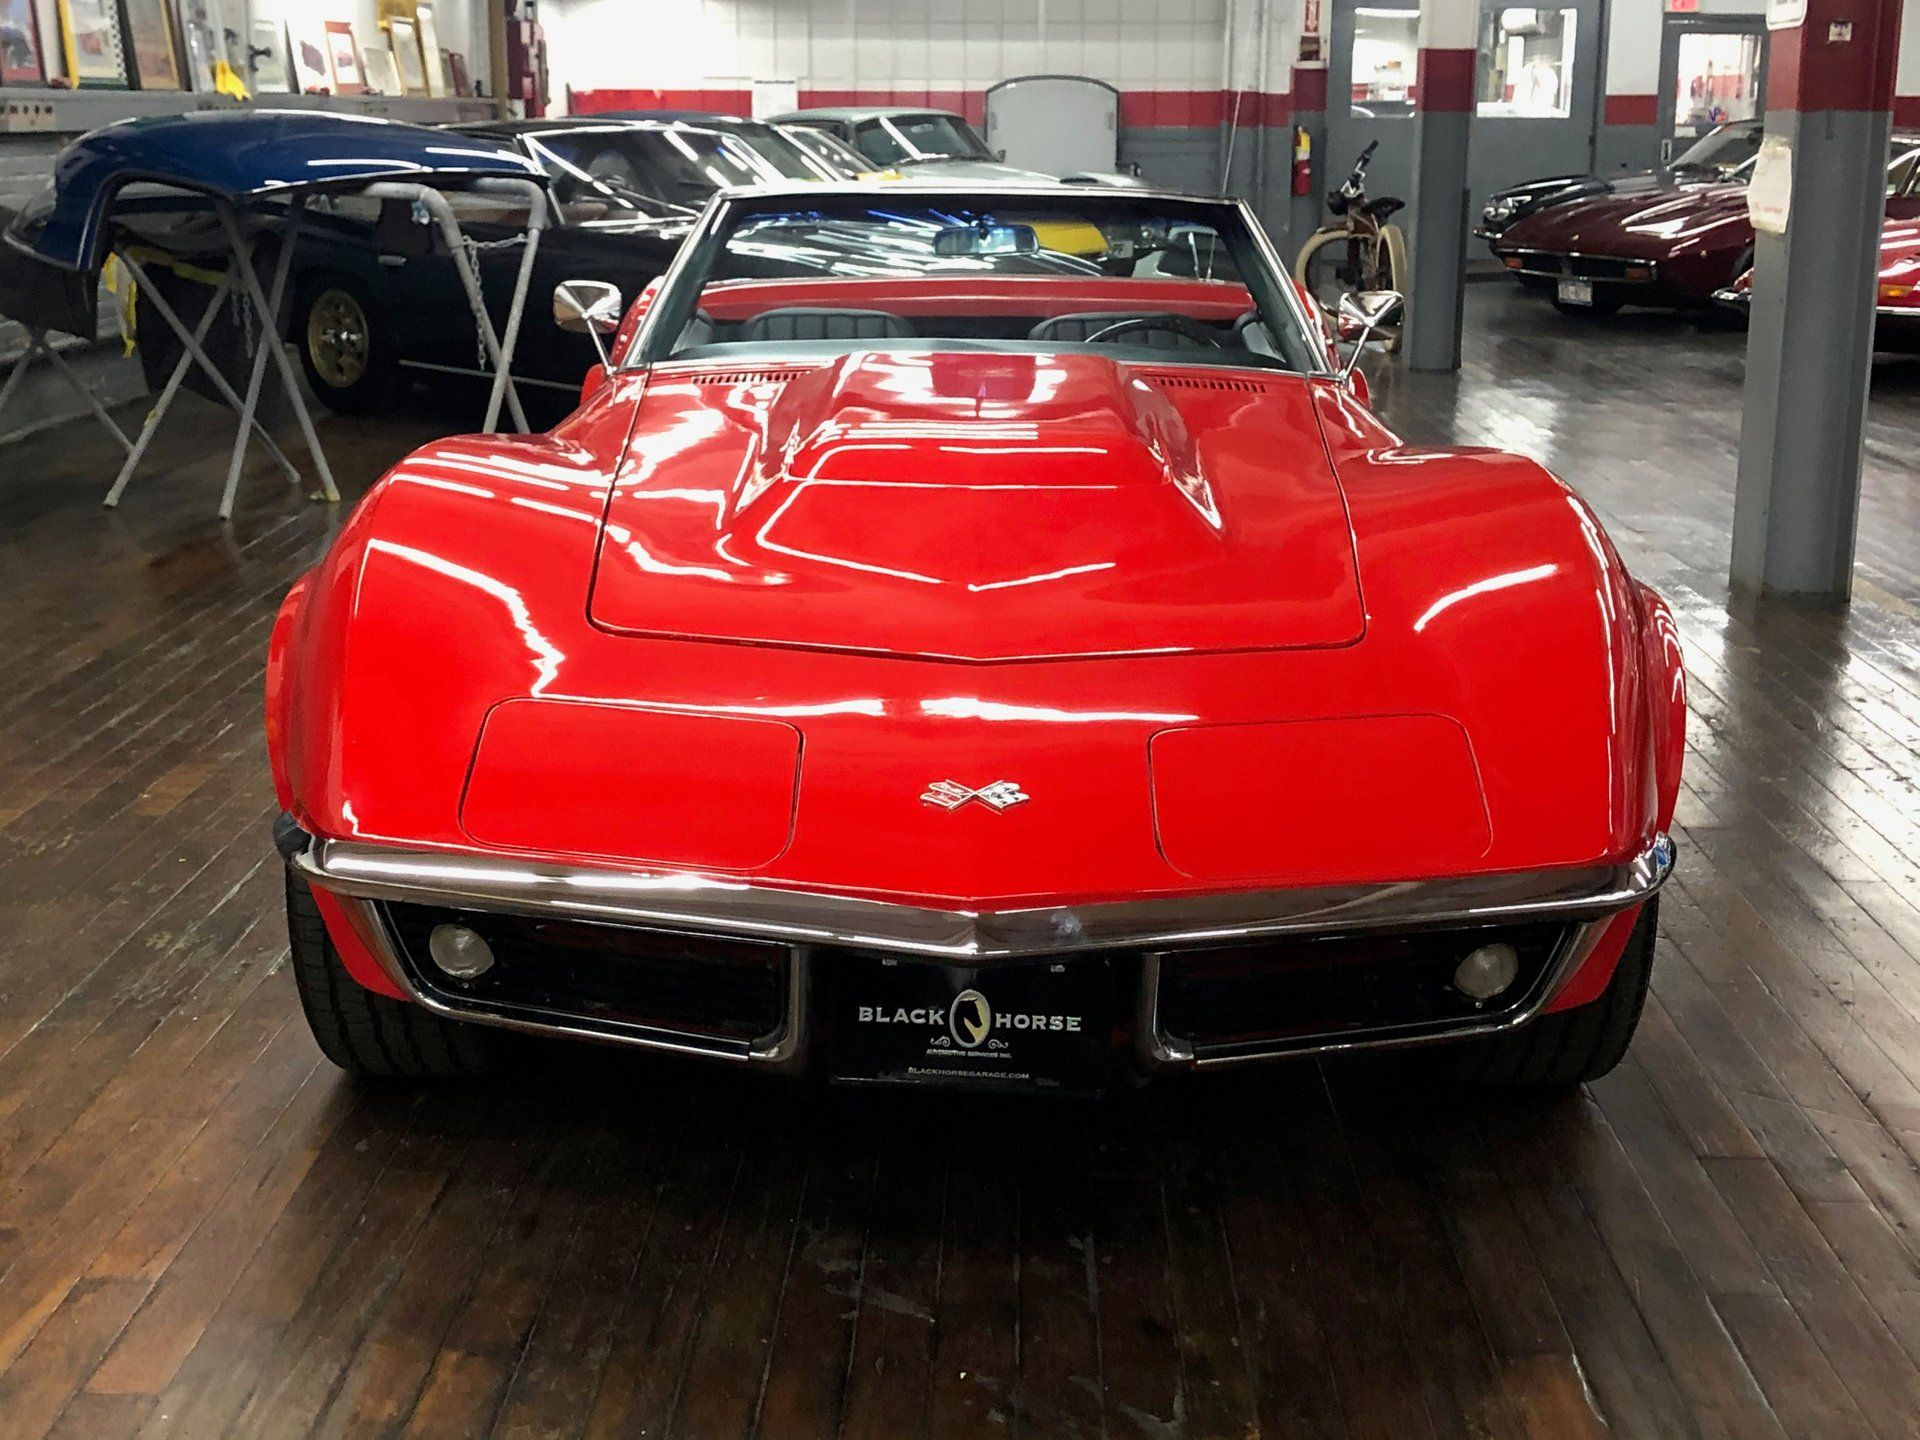 Celebrate The C3 With This 1968 Chevy Corvette